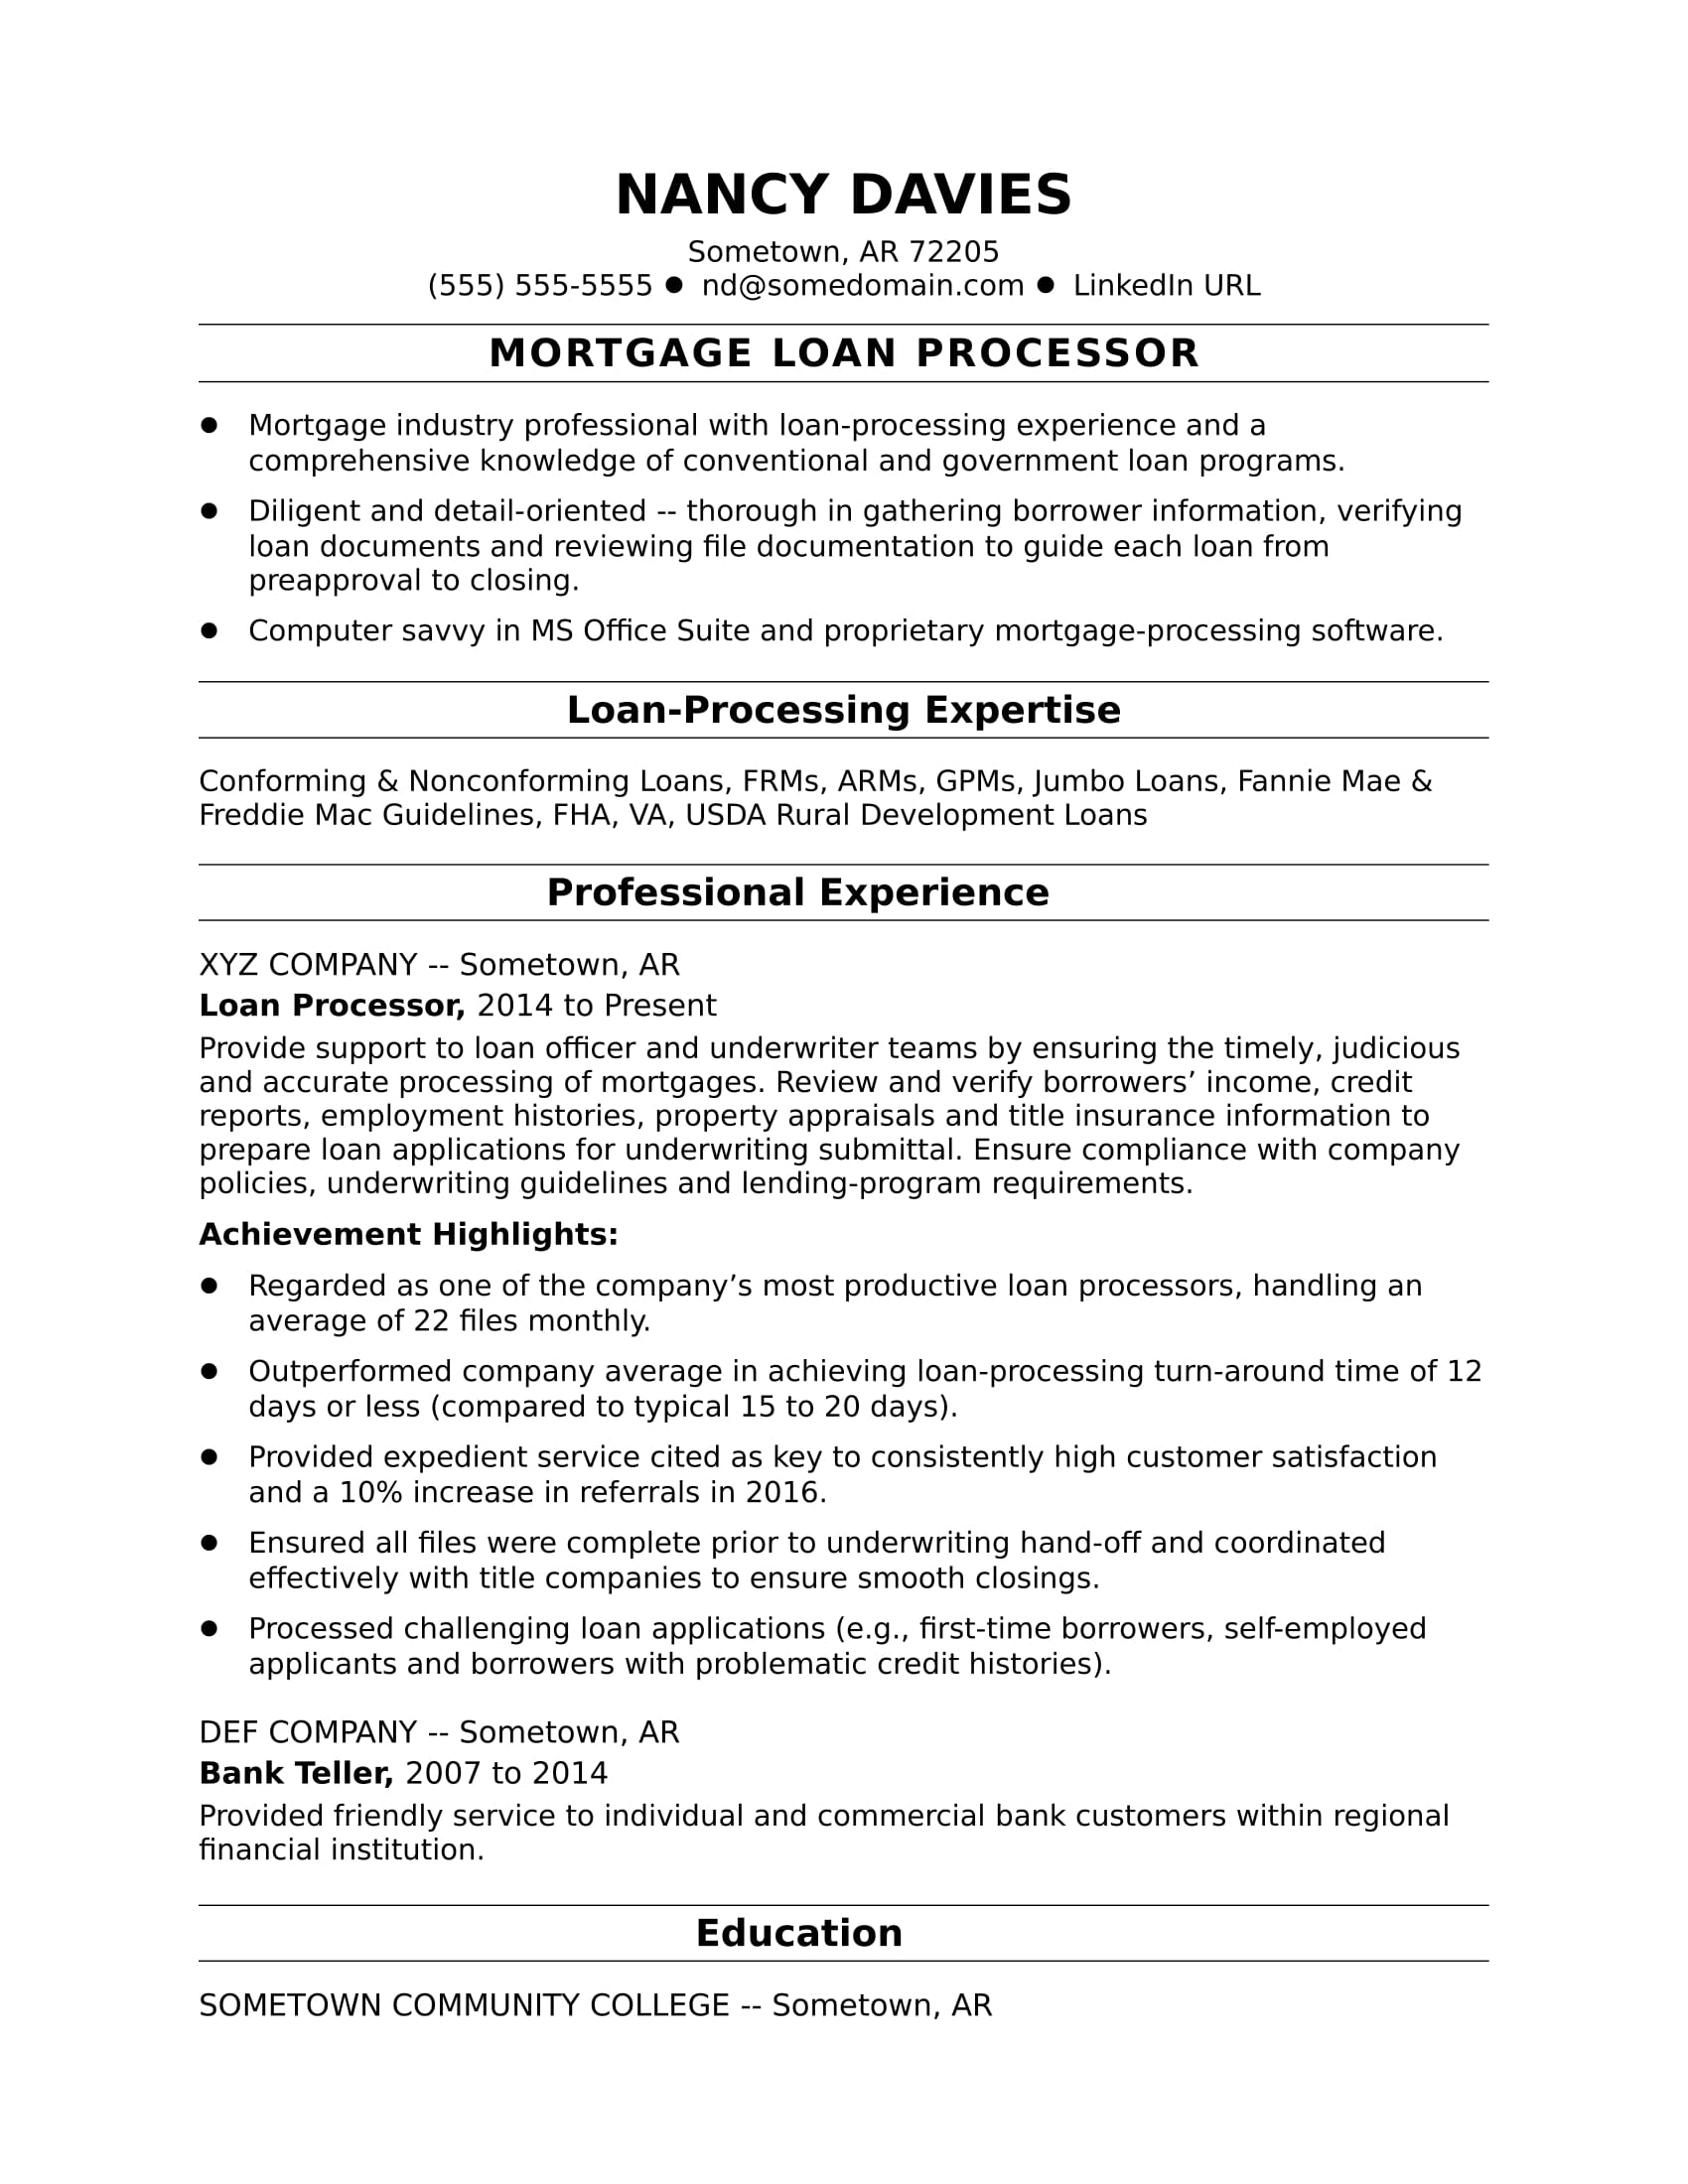 mortgage loan processor resume sample monster underwriter cover letter builder template Resume Mortgage Underwriter Resume Cover Letter